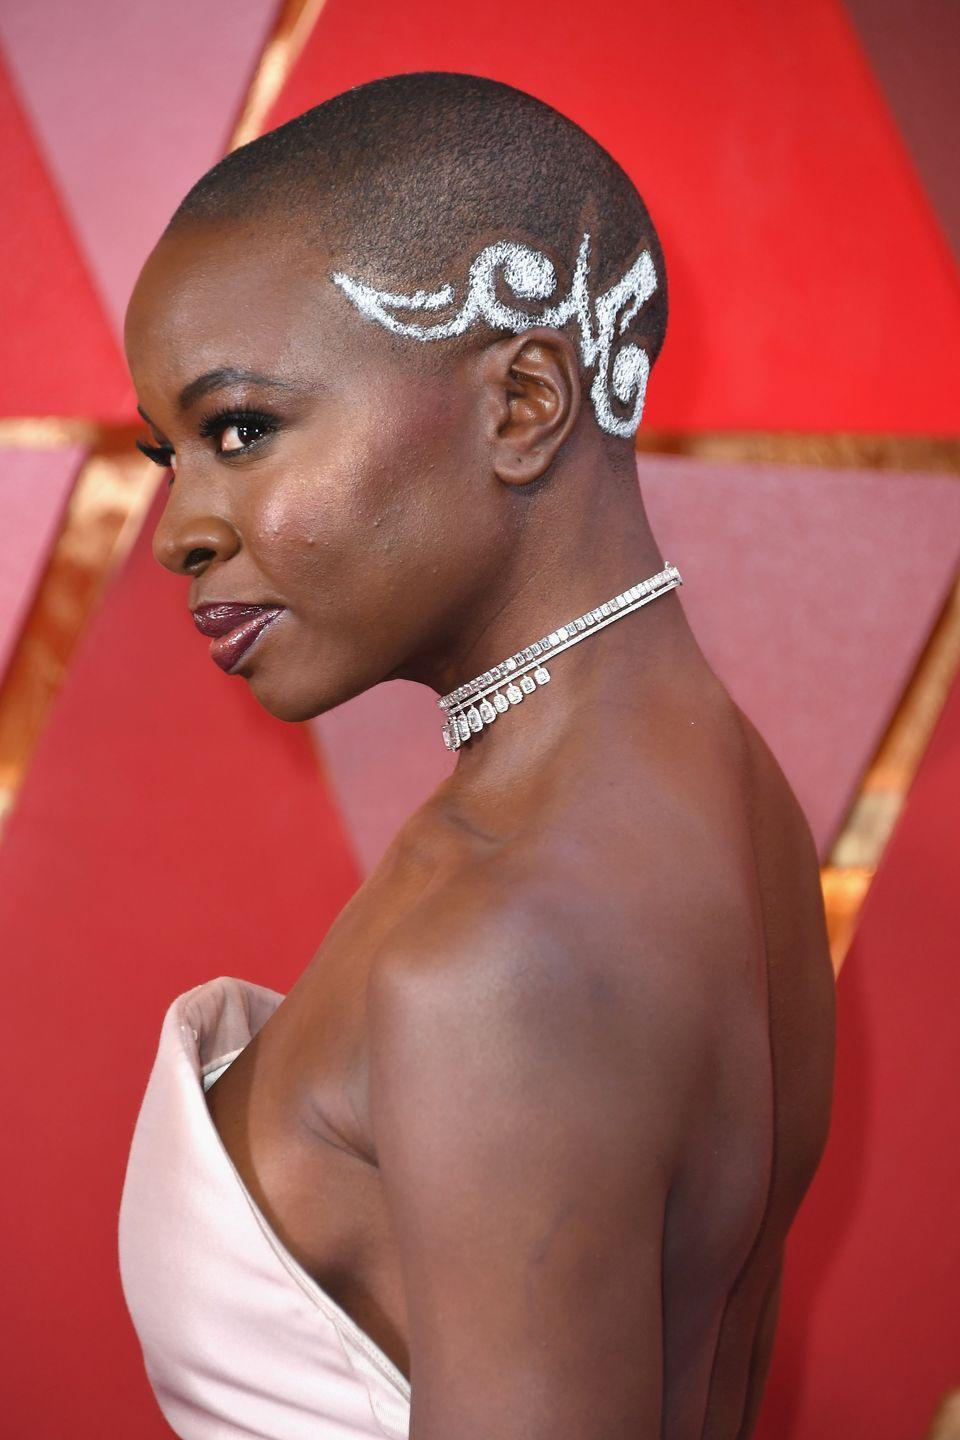 """<p>Take your barber cut look up several notches like actress <strong>Danai Gurira</strong>. Not only did she have an intricate design, she added some sparkle for the Academy Awards. (At home, you can mimic this look using <a href=""""https://go.redirectingat.com?id=74968X1596630&url=https%3A%2F%2Fwww.walmart.com%2Fip%2FTRESemm-Colored-Hair-Spray-Silver-1-8-oz%2F794864662&sref=https%3A%2F%2Fwww.goodhousekeeping.com%2Fbeauty%2Fhair%2Fg2471%2Fshort-black-hairstyles-ideas%2F"""" rel=""""nofollow noopener"""" target=""""_blank"""" data-ylk=""""slk:TRESemmé Glitter Hair Spray in Silver"""" class=""""link rapid-noclick-resp"""">TRESemmé Glitter Hair Spray in Silver</a>.) Ensure you keep the stencil in place and cover the rest of your head so the spray just fills in the design. </p>"""